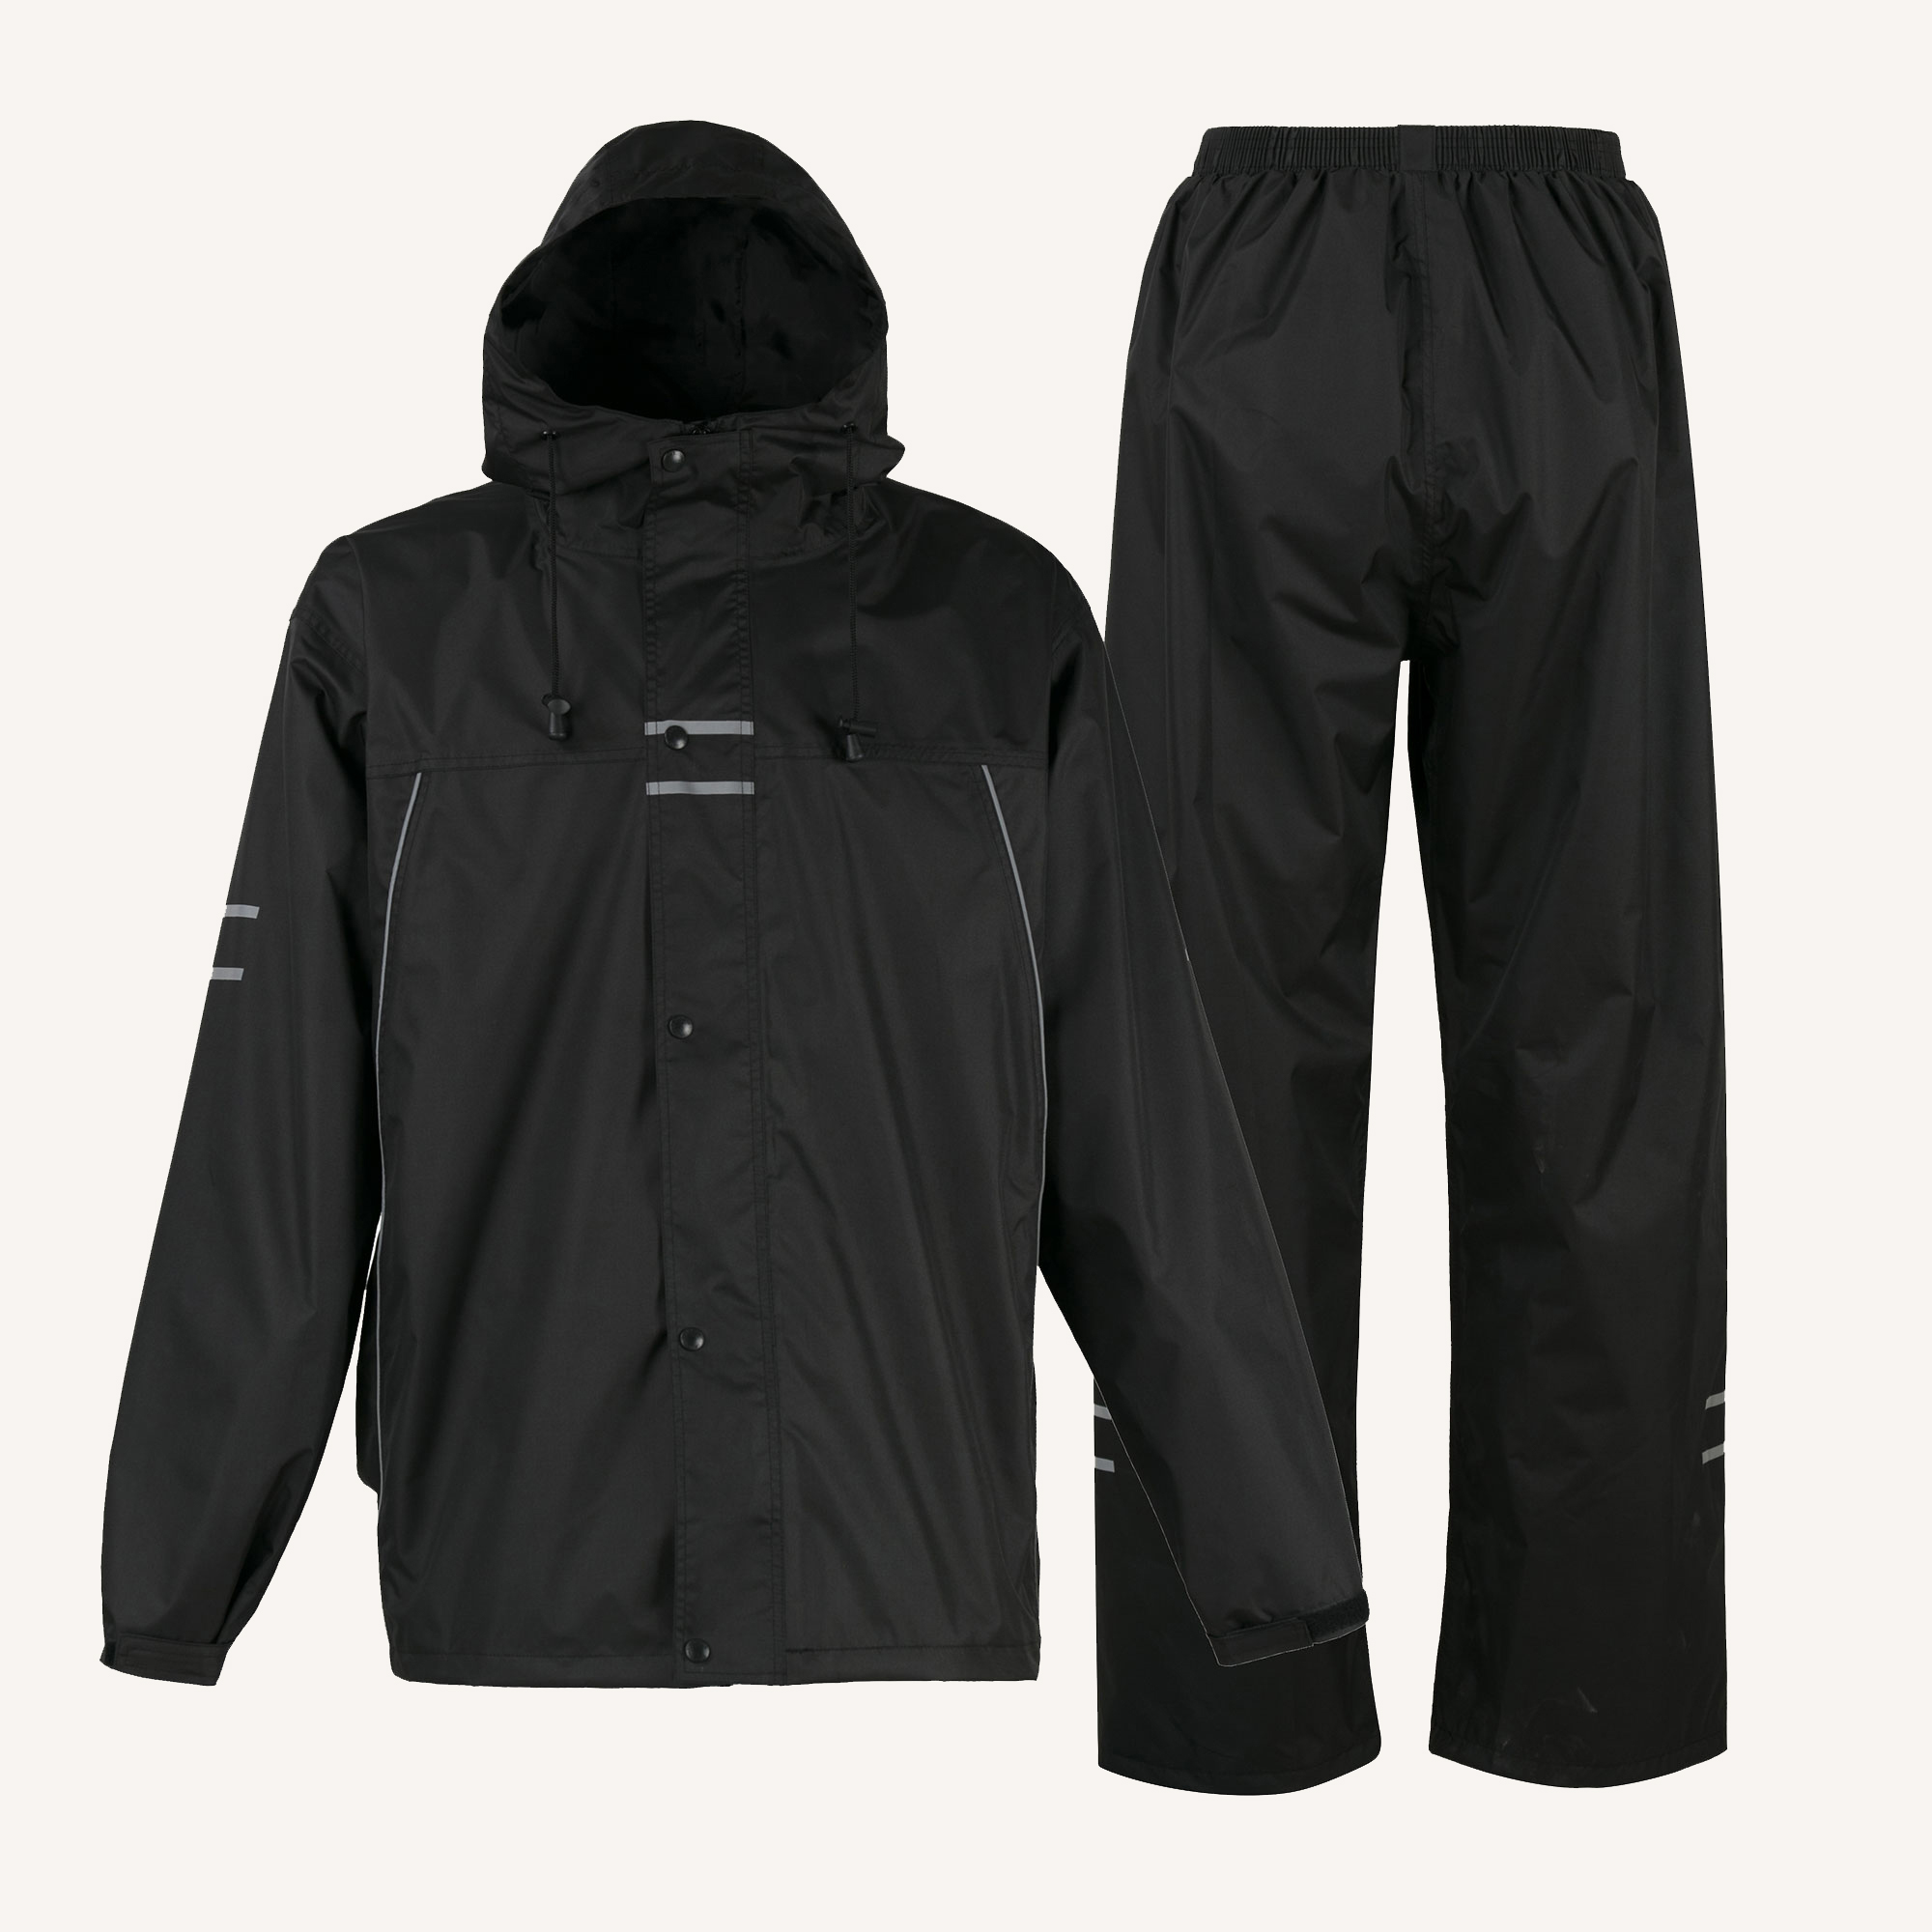 1707 Superlight Waterproof Clothing Suit